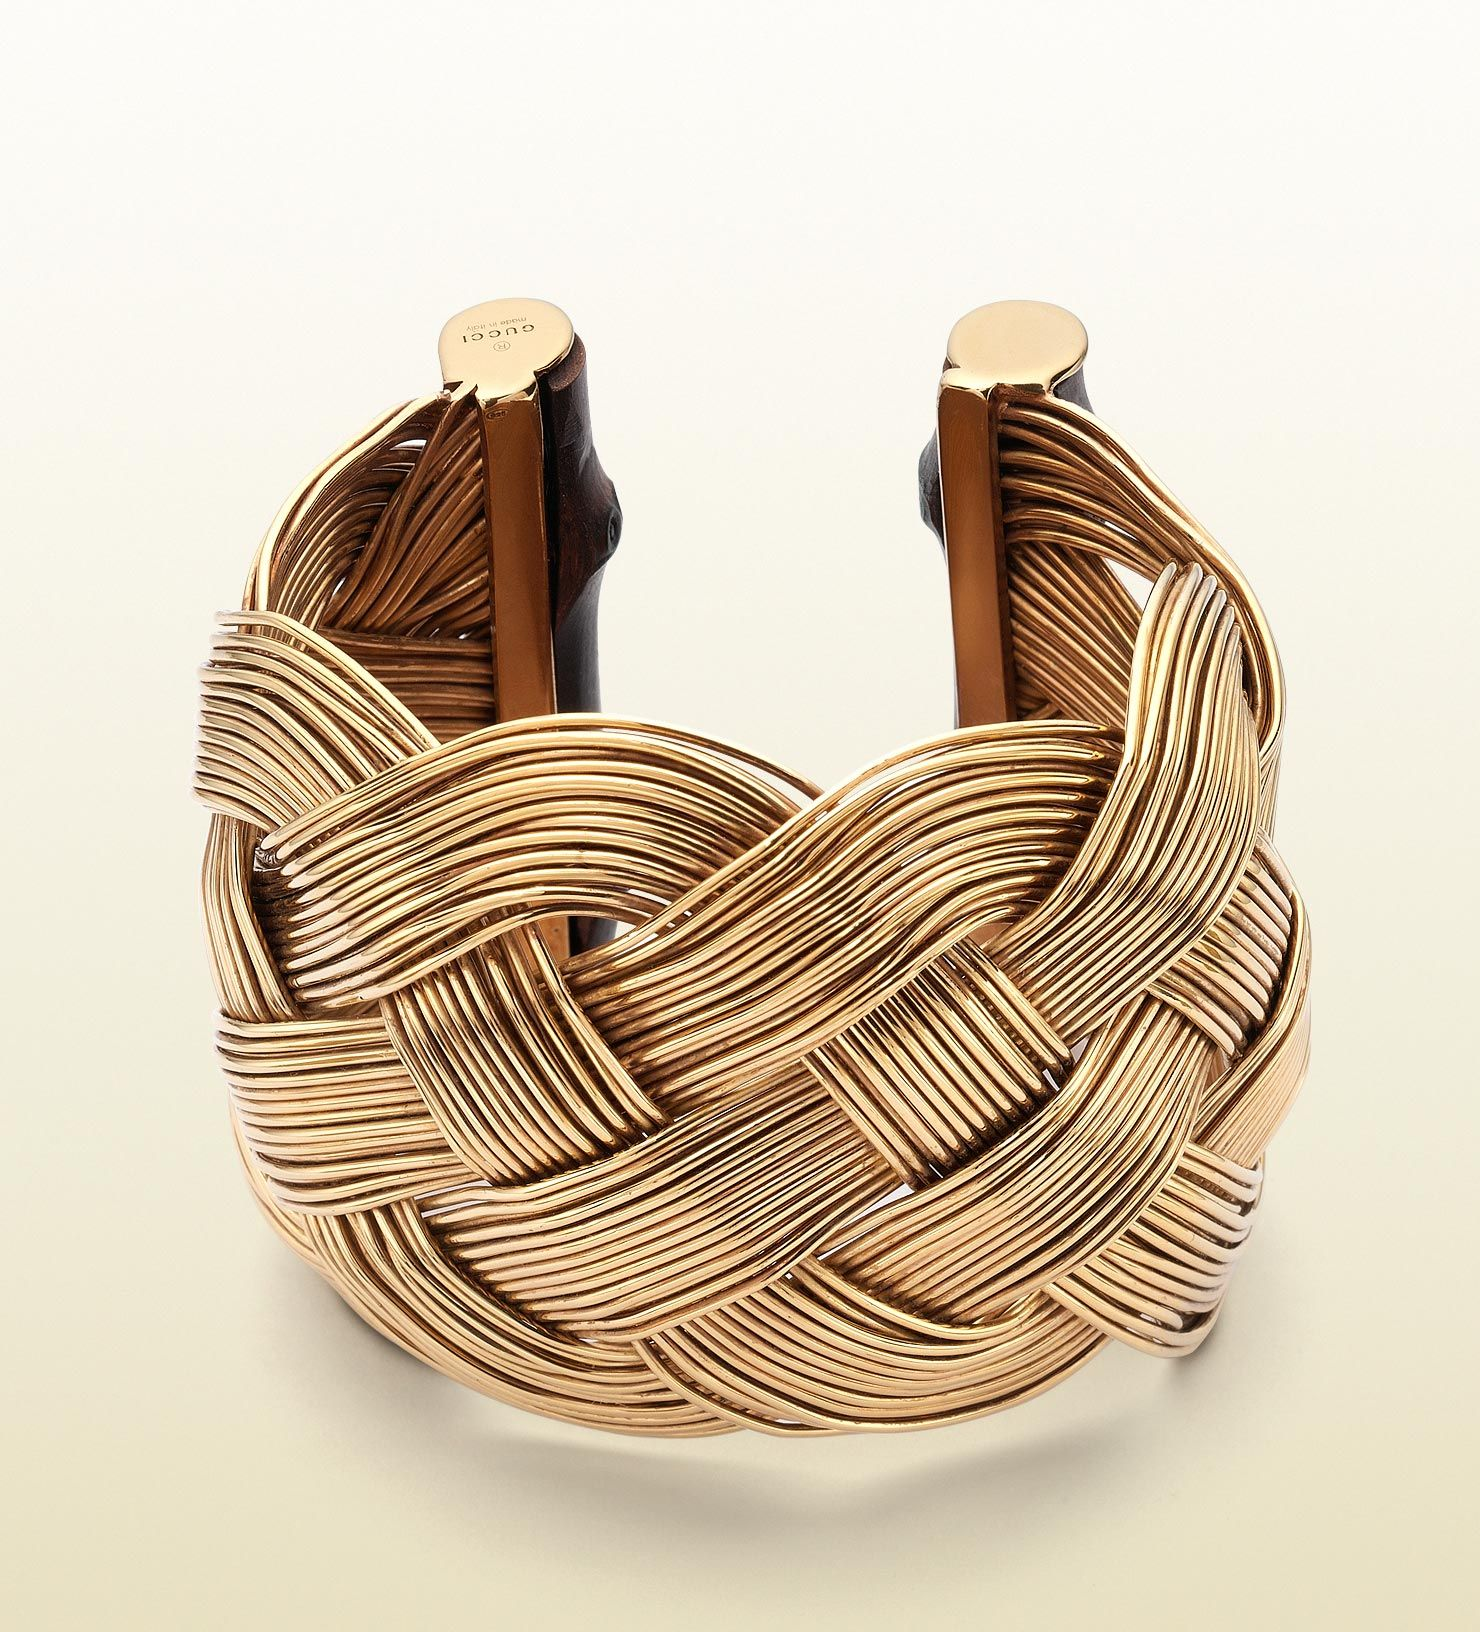 #engagementparty Gucci Bamboo Bracelet with Woven Motif. $2,150. Braided Bangle. @gucci